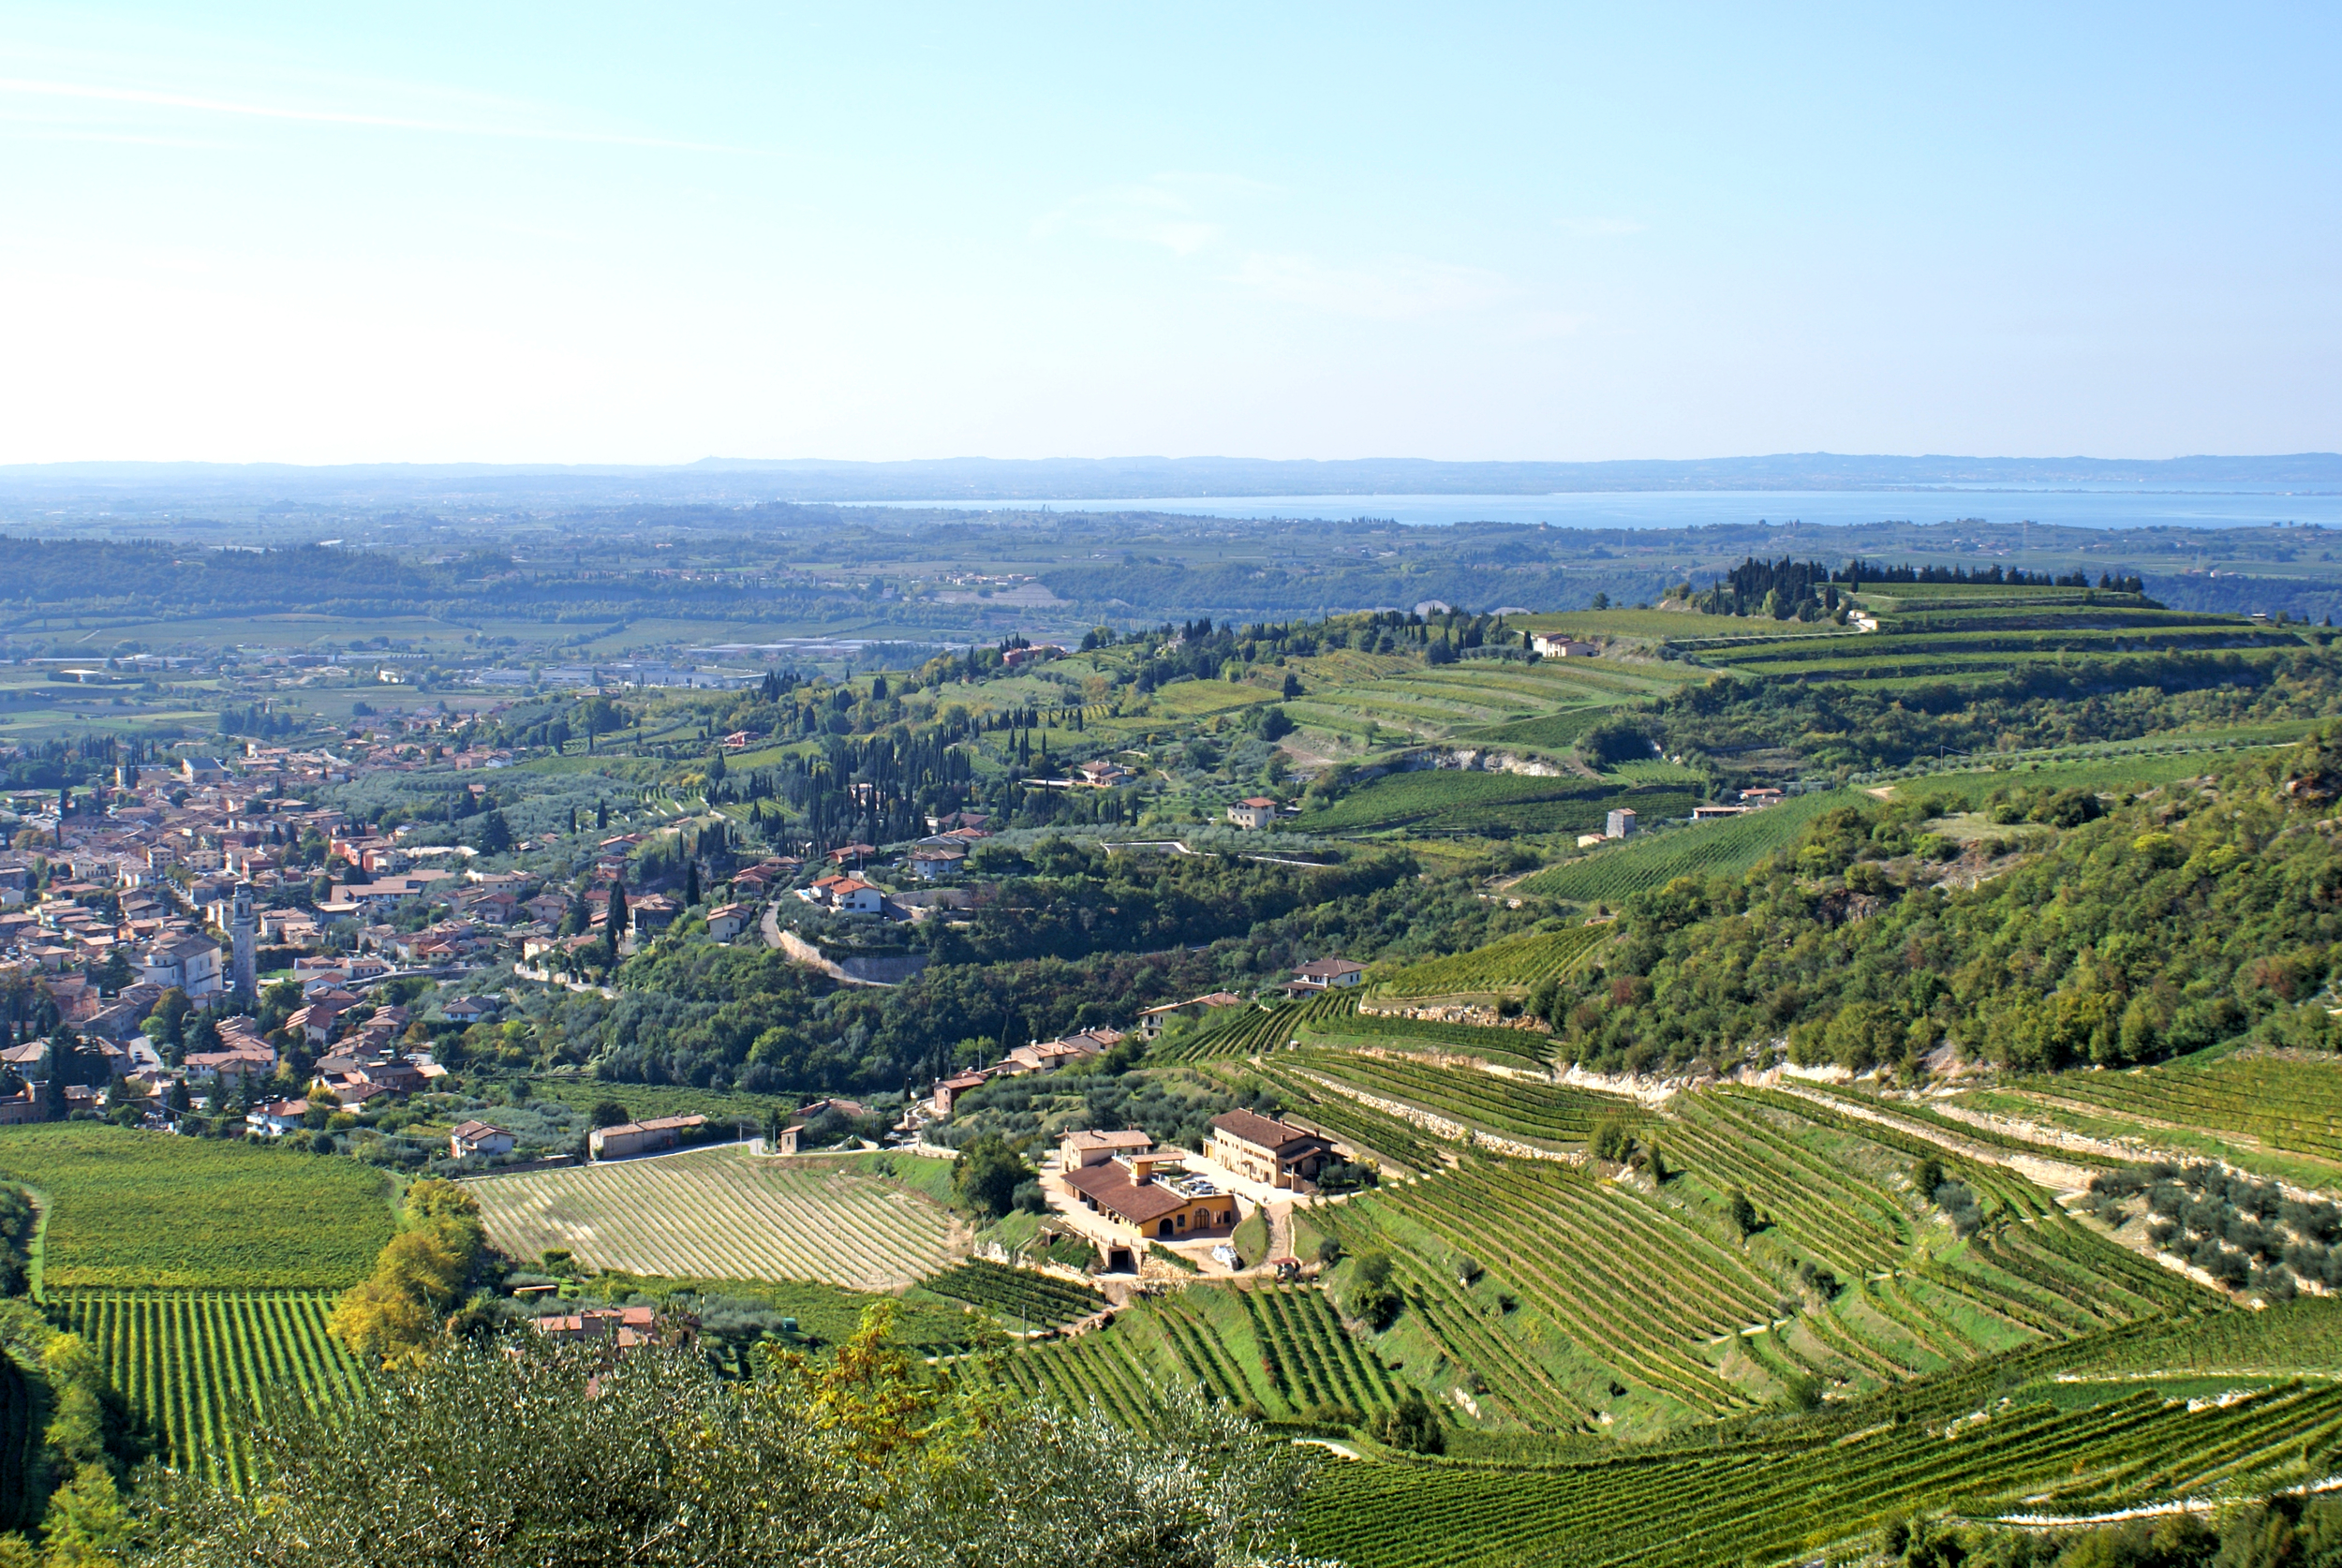 The 'valley of many cellars' is formed of several famous fingerling valleys